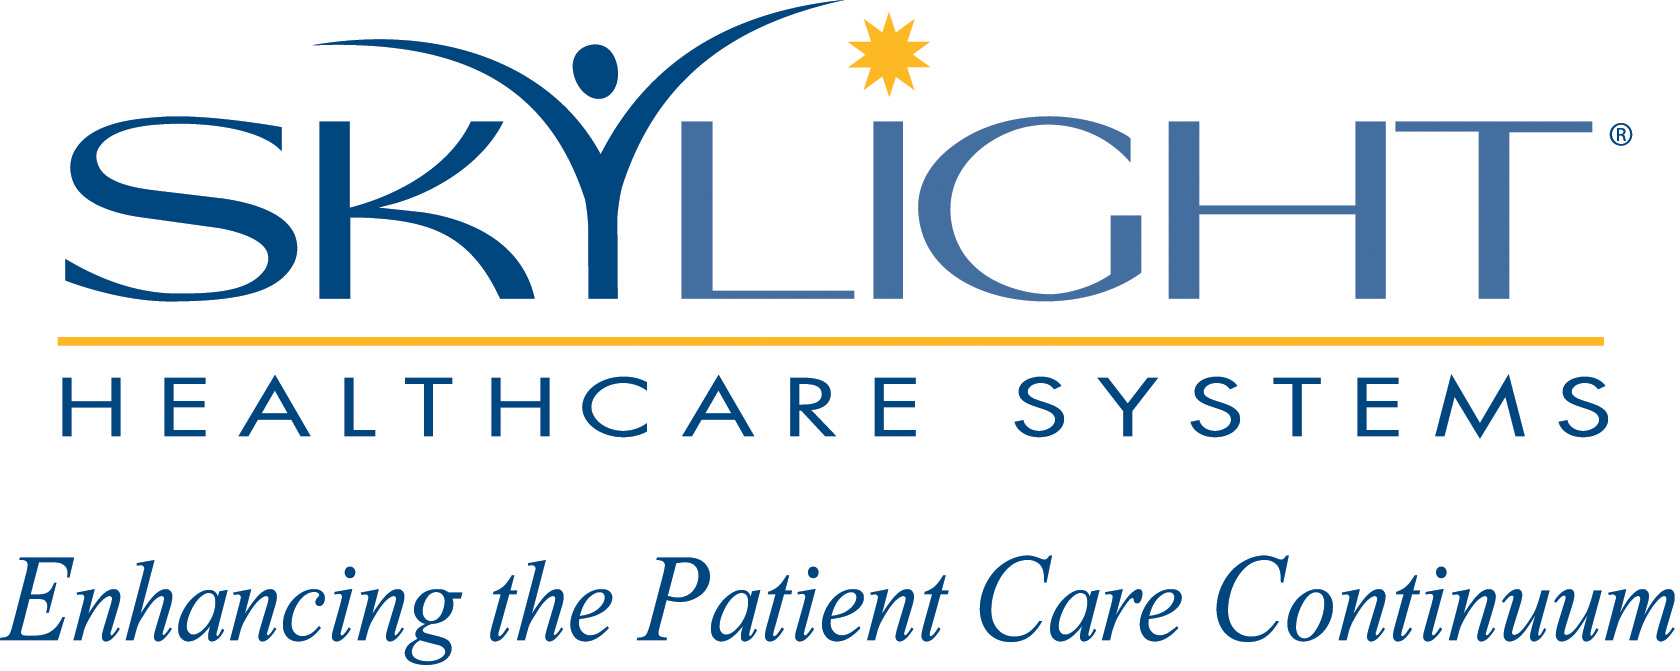 Skylight Healthcare Systems Logo